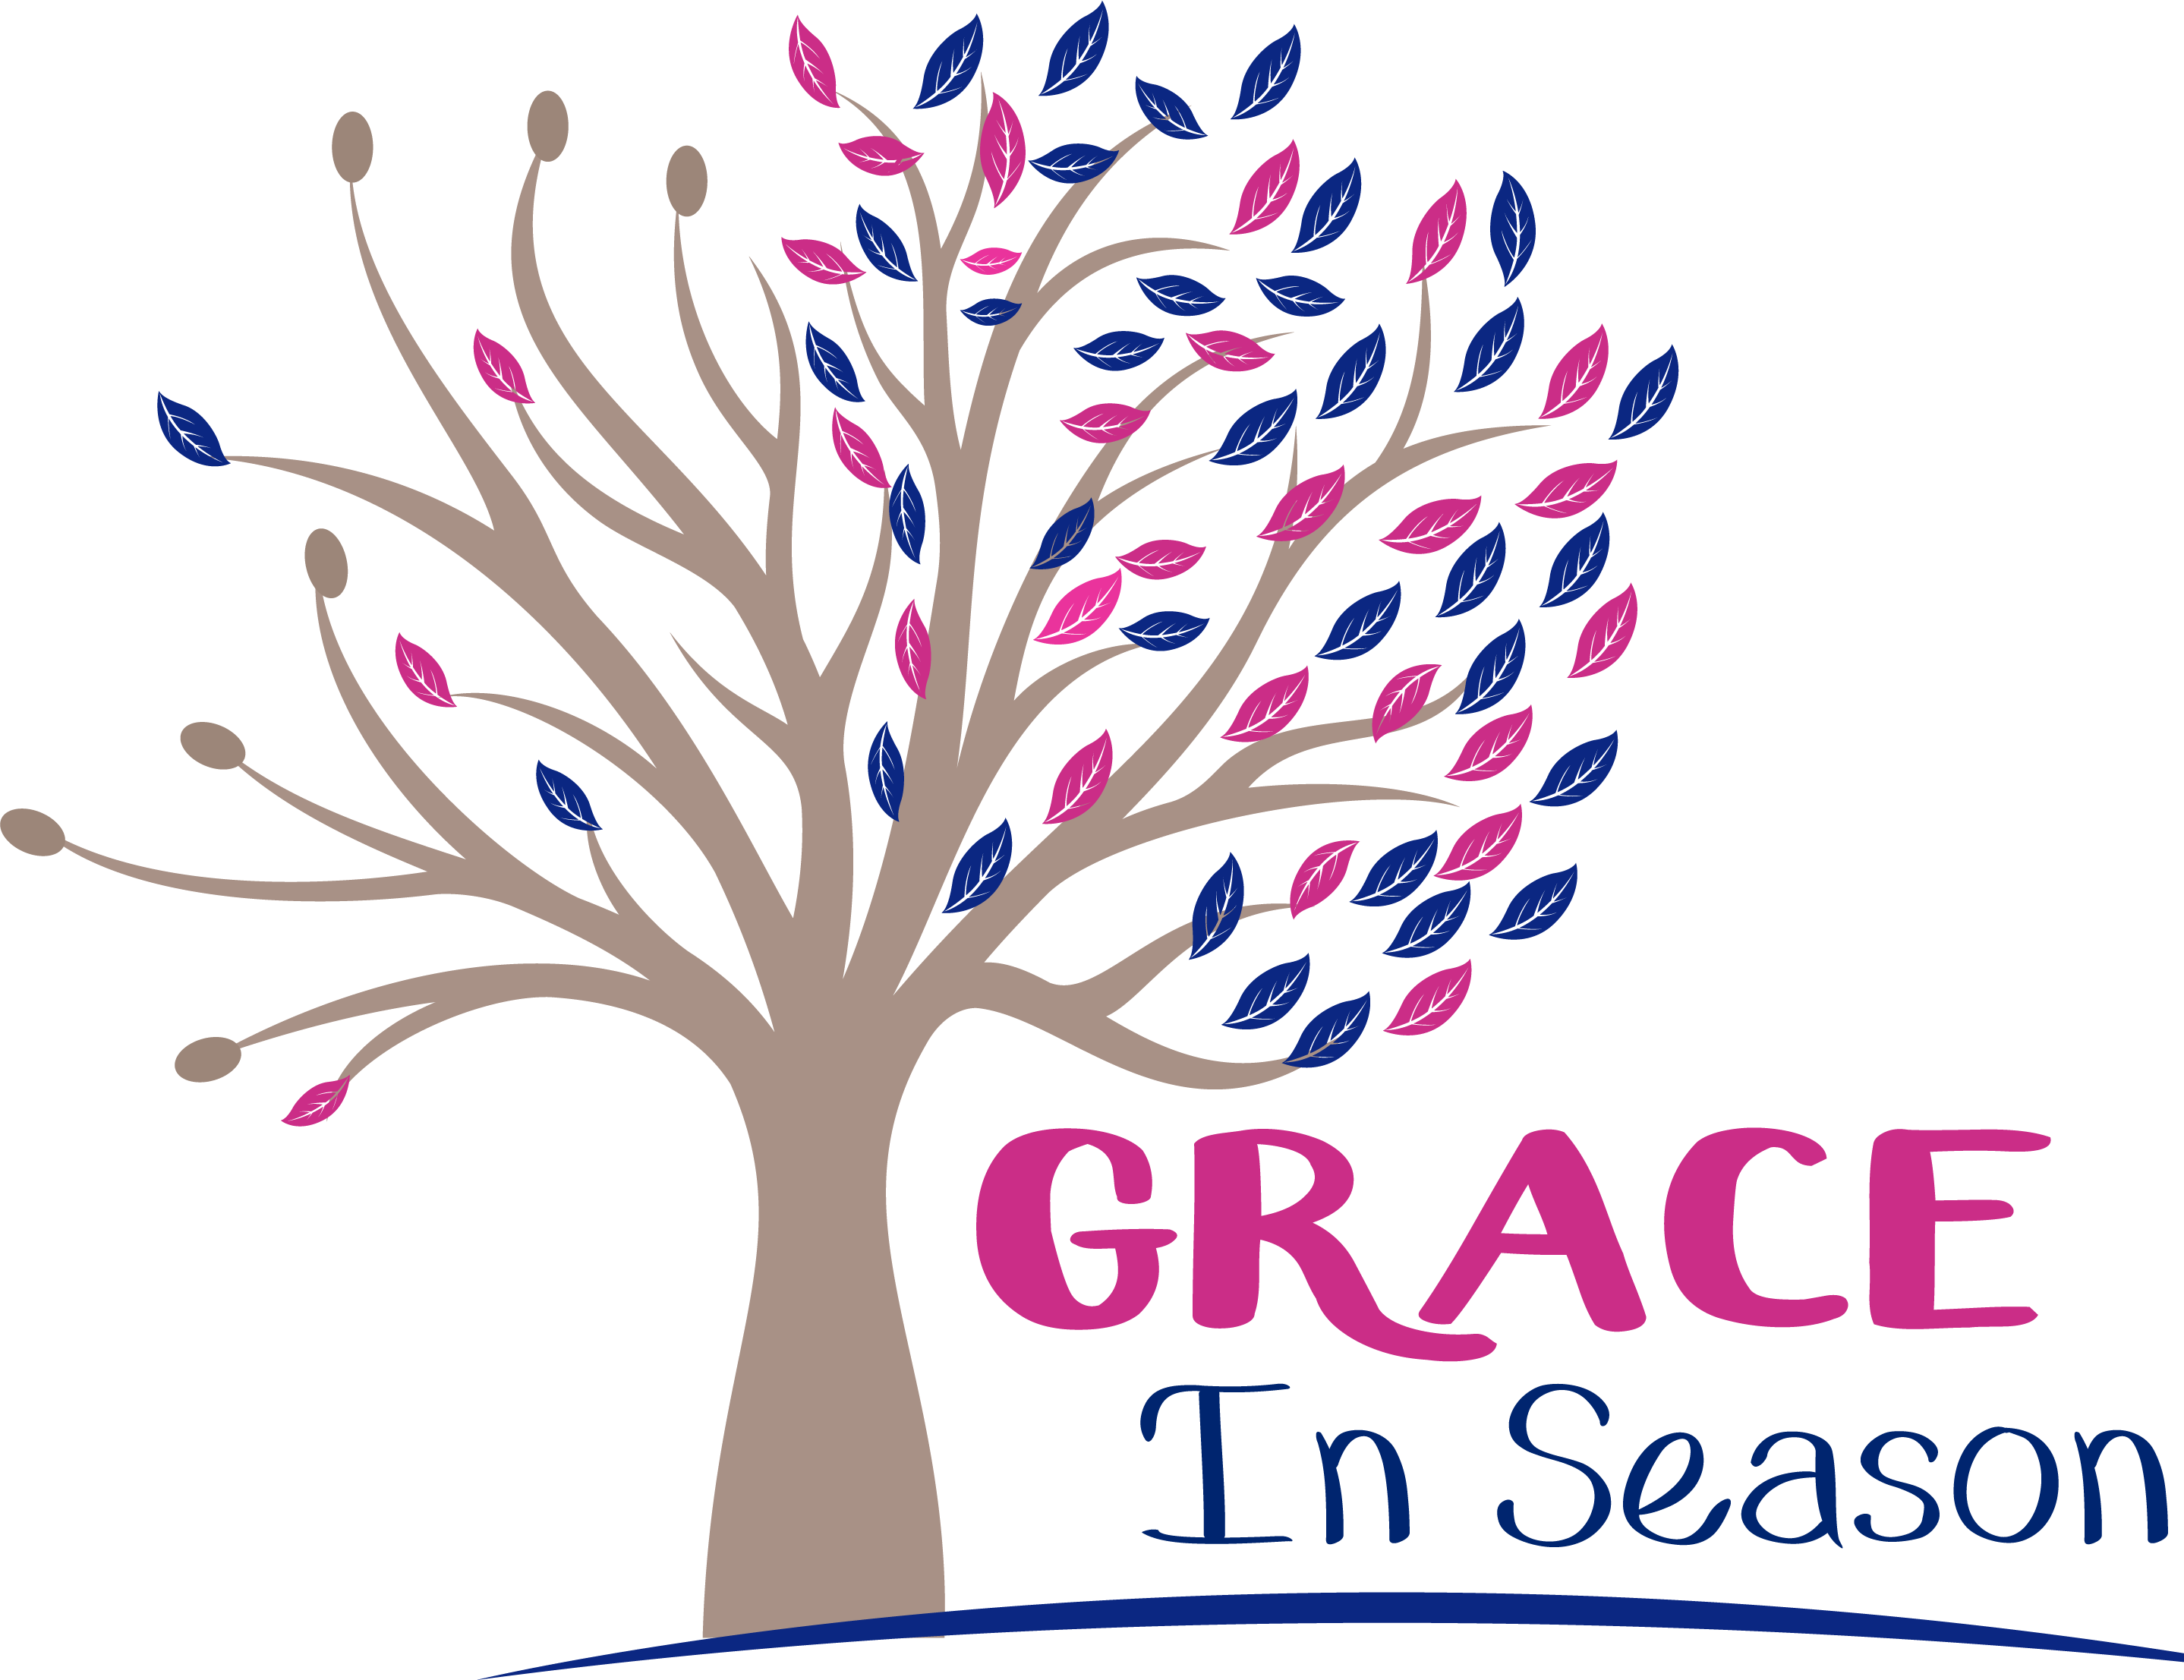 Grace in Season